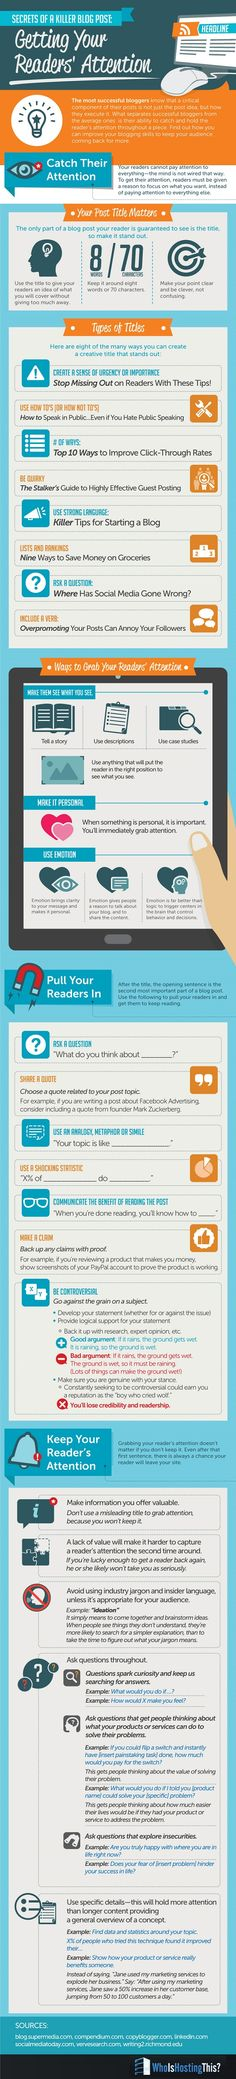 Secrets of a Killer #Blog Post - Getting Your Readers' Attention #Infographic